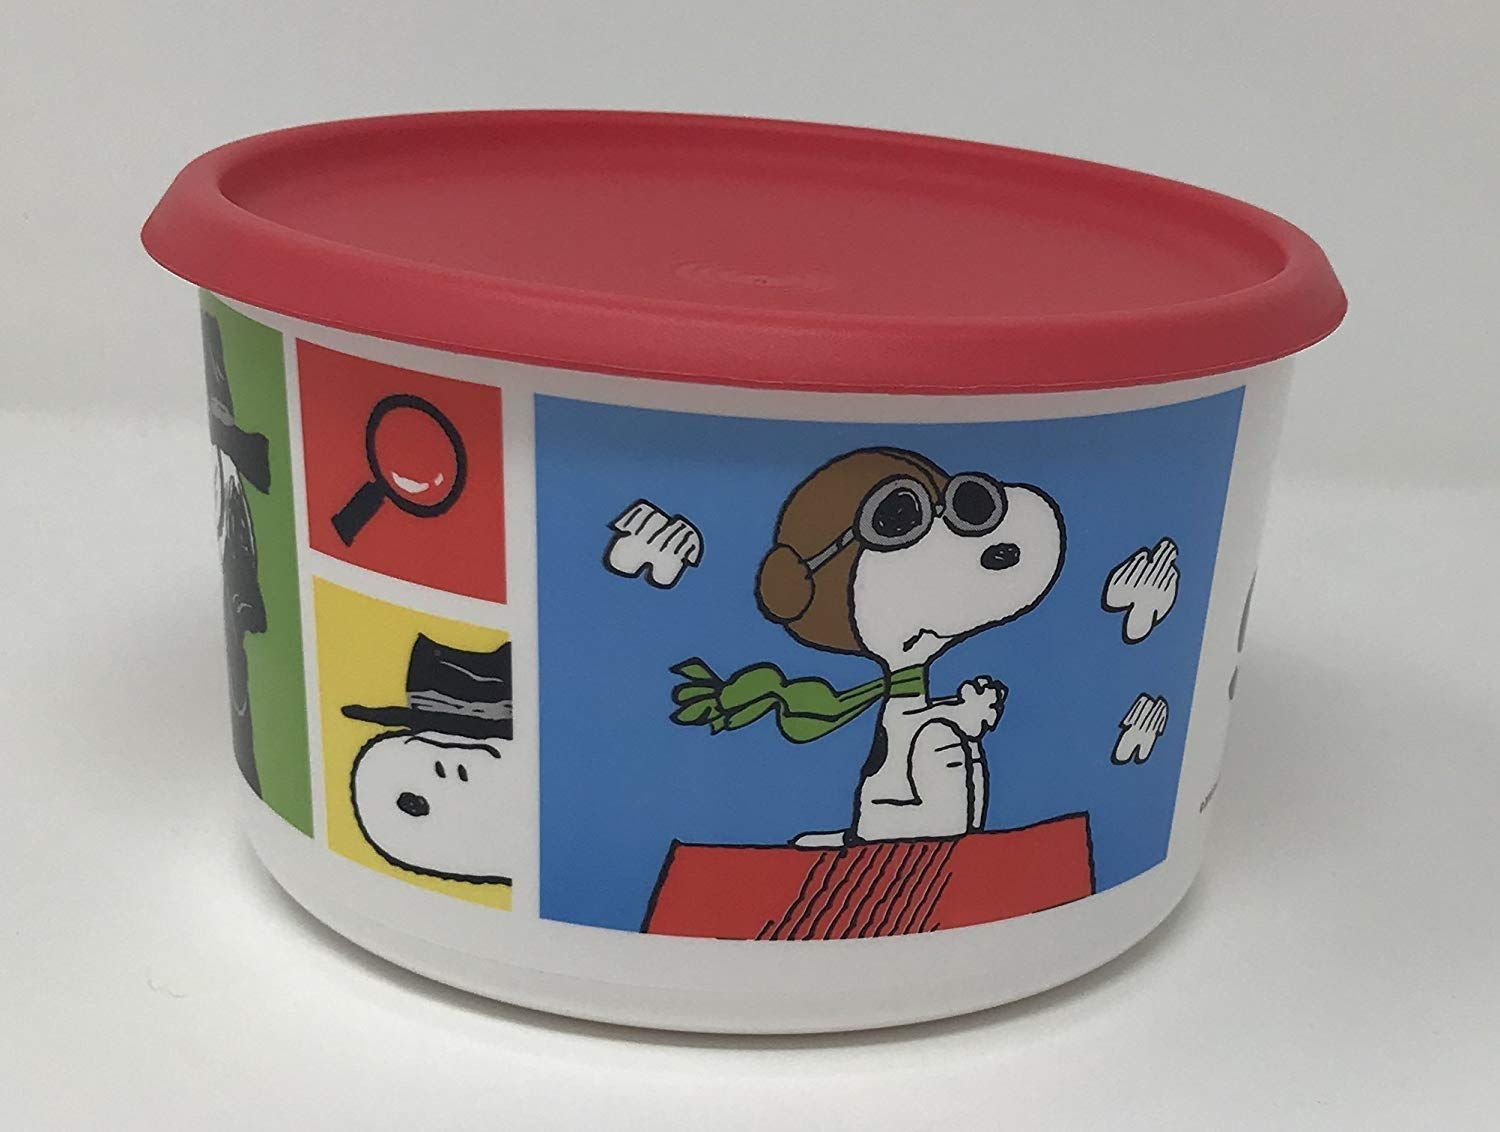 Tupperware 6 Cup Cookie Snack Canister Exclusive Peanuts Snoopy Design with Guava seal